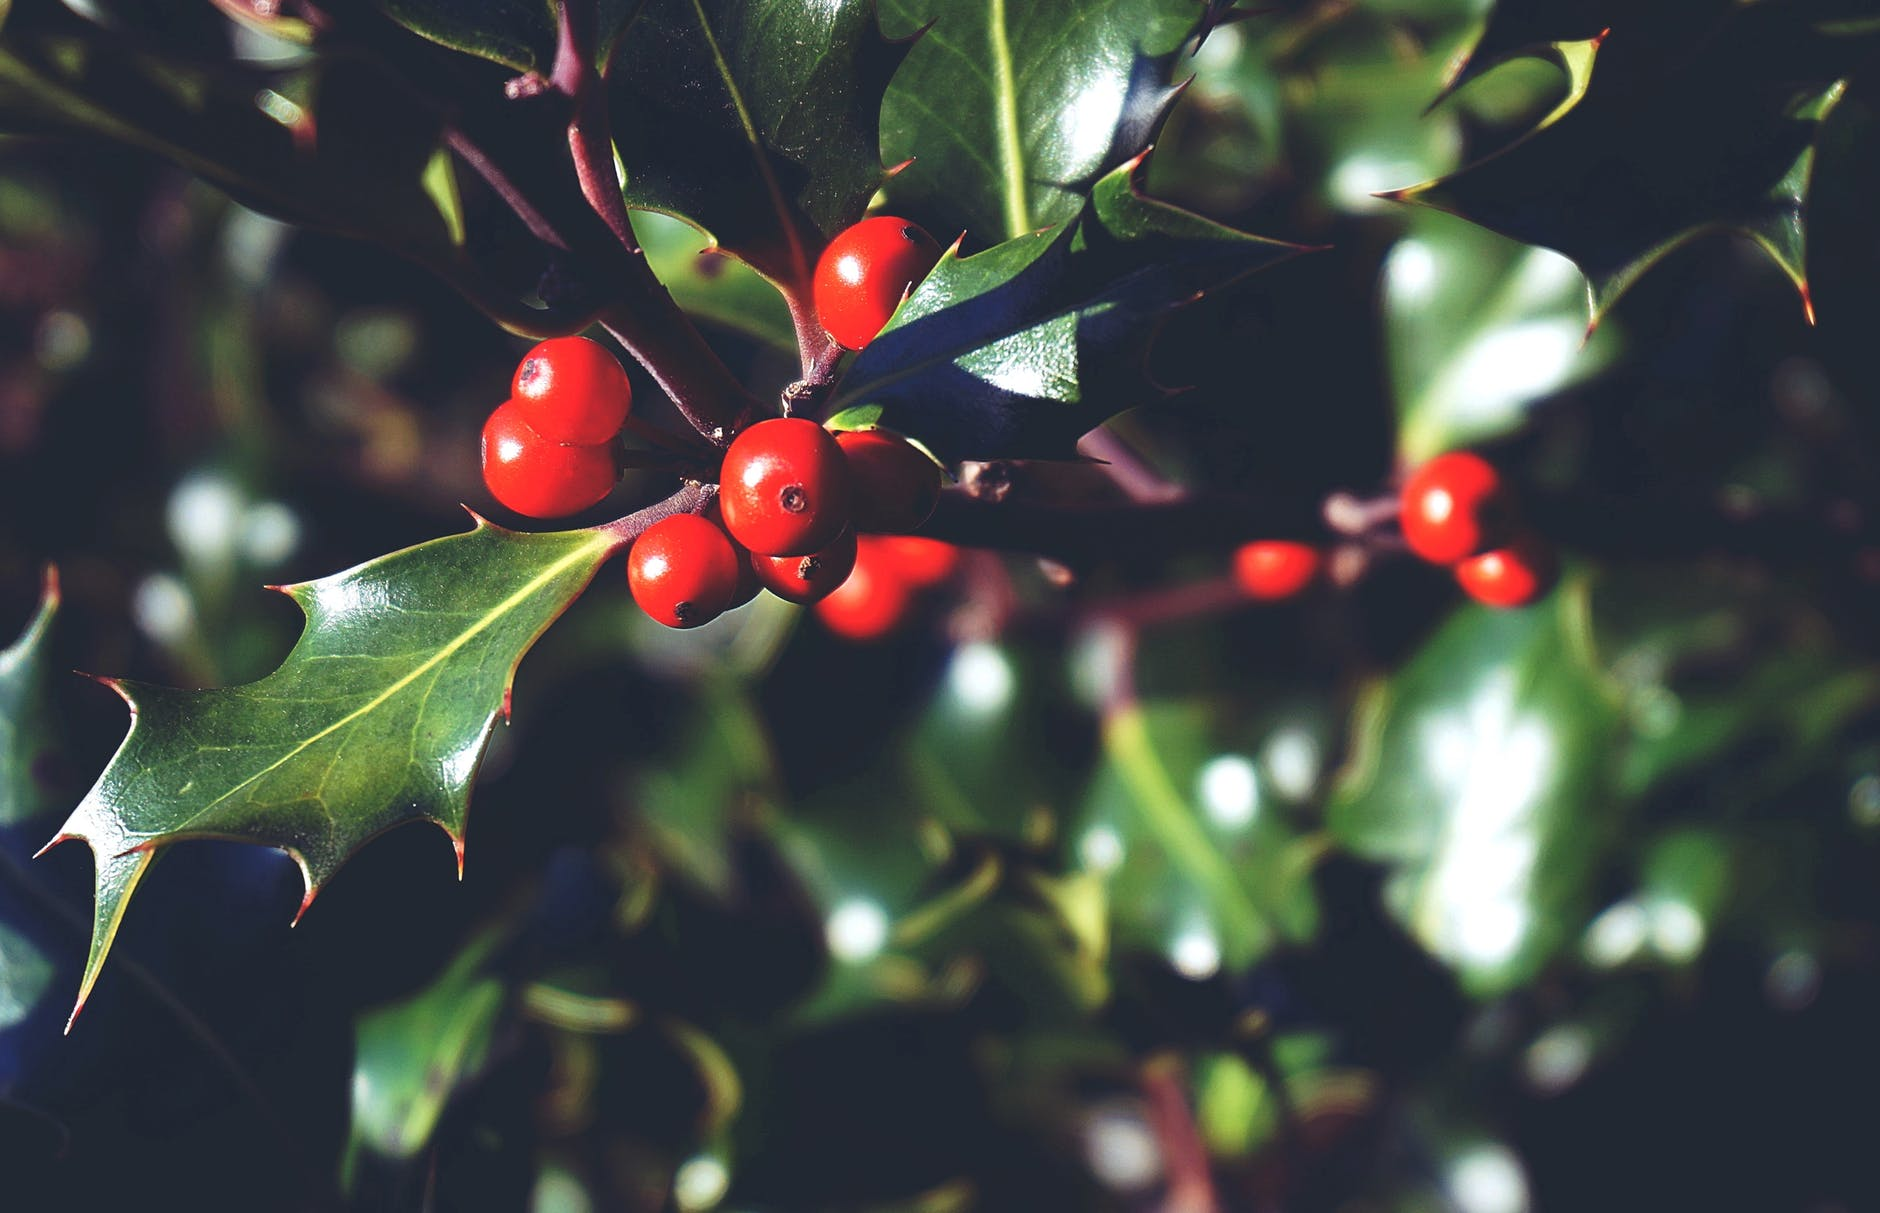 Some red berries on a green sprig of Holly.